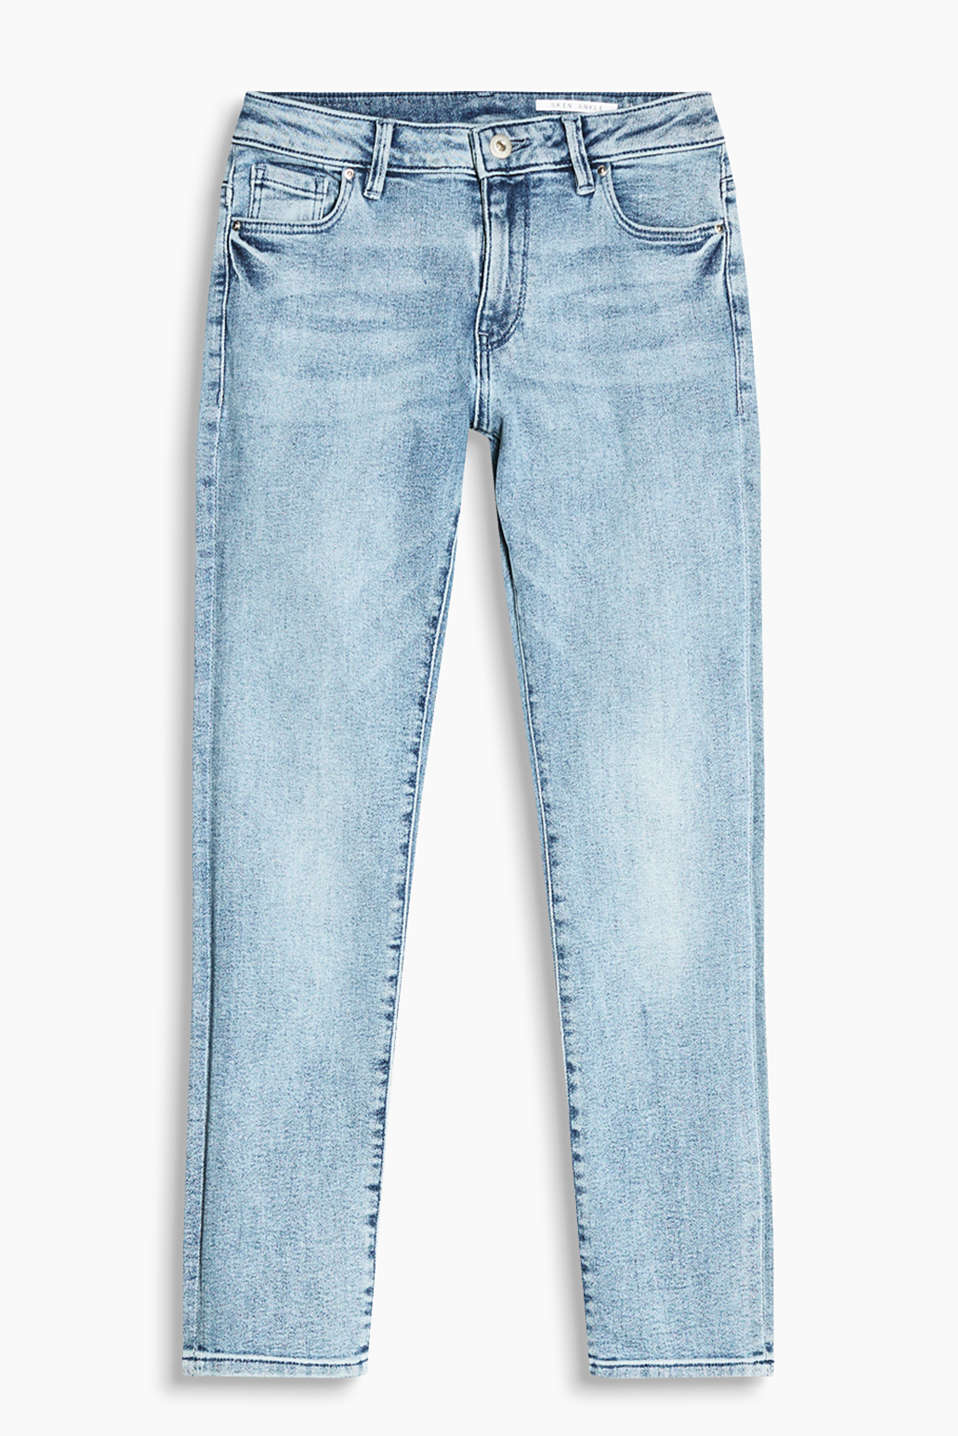 Show off your ankles in these trendy cropped jeans made of faded stretch cotton denim